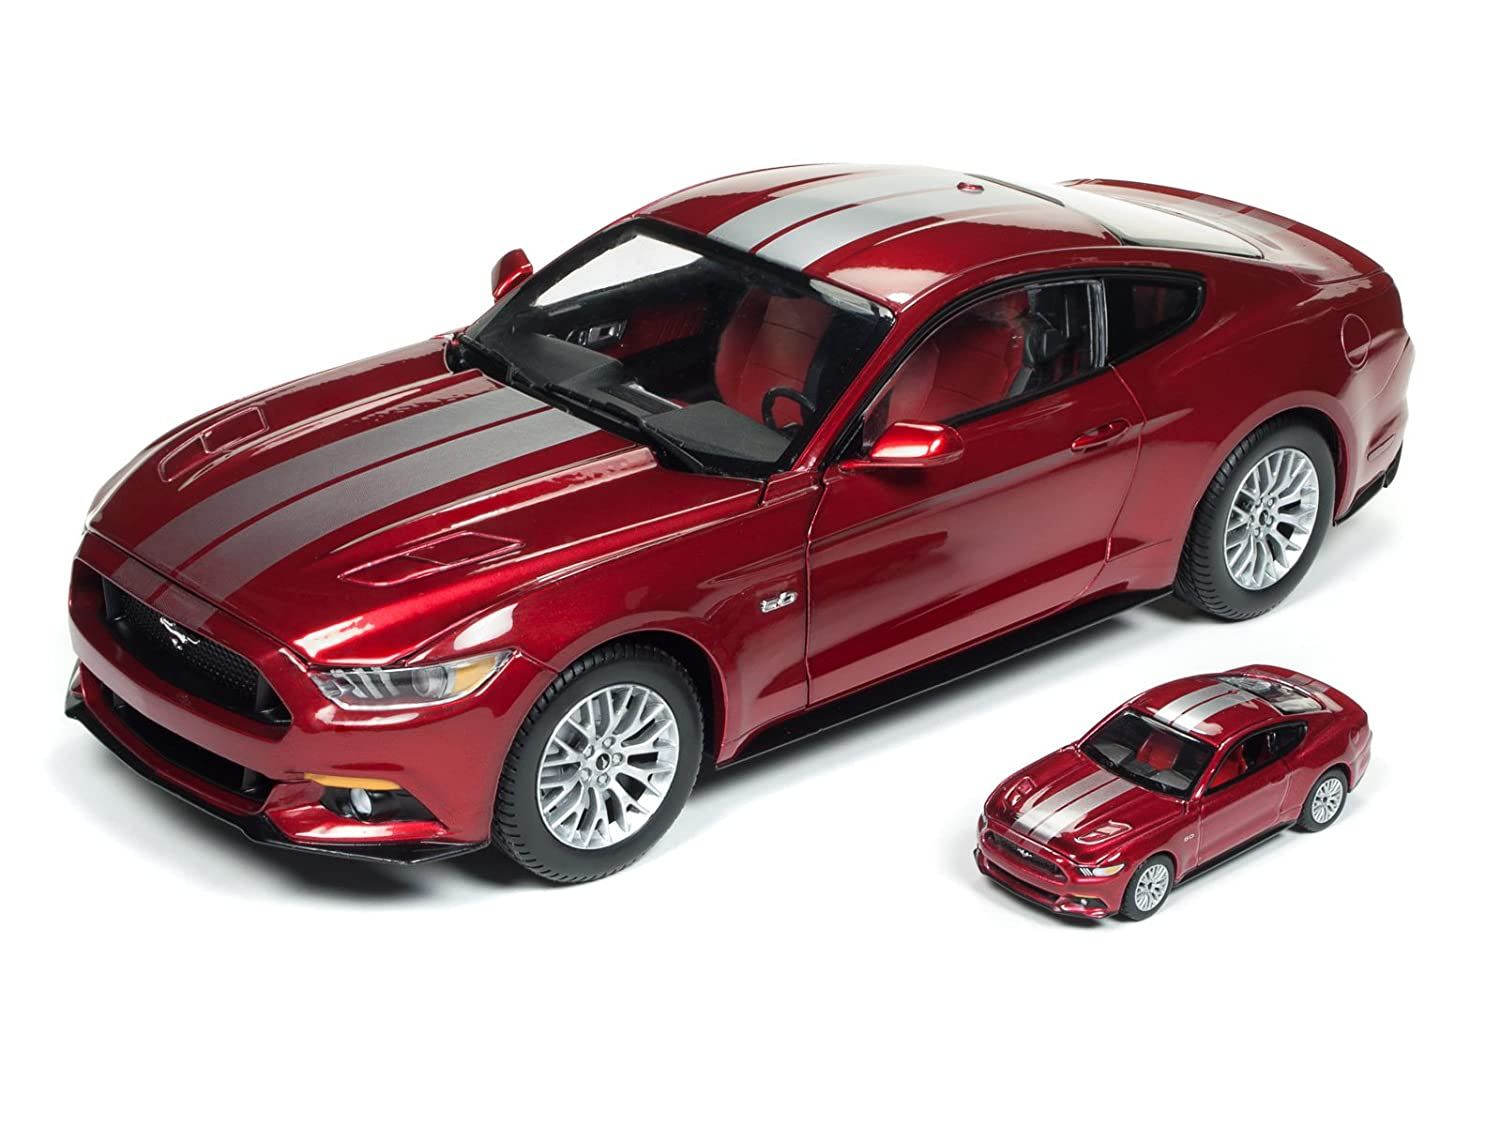 2017 Ford Mustang 5.0 GT Ruby Red Metallic with Silver Stripes 1//18 and 1//64 2 Cars Set Limited Edition to 1002 pieces Worldwide Diecast Model Cars by Autoworld AW245